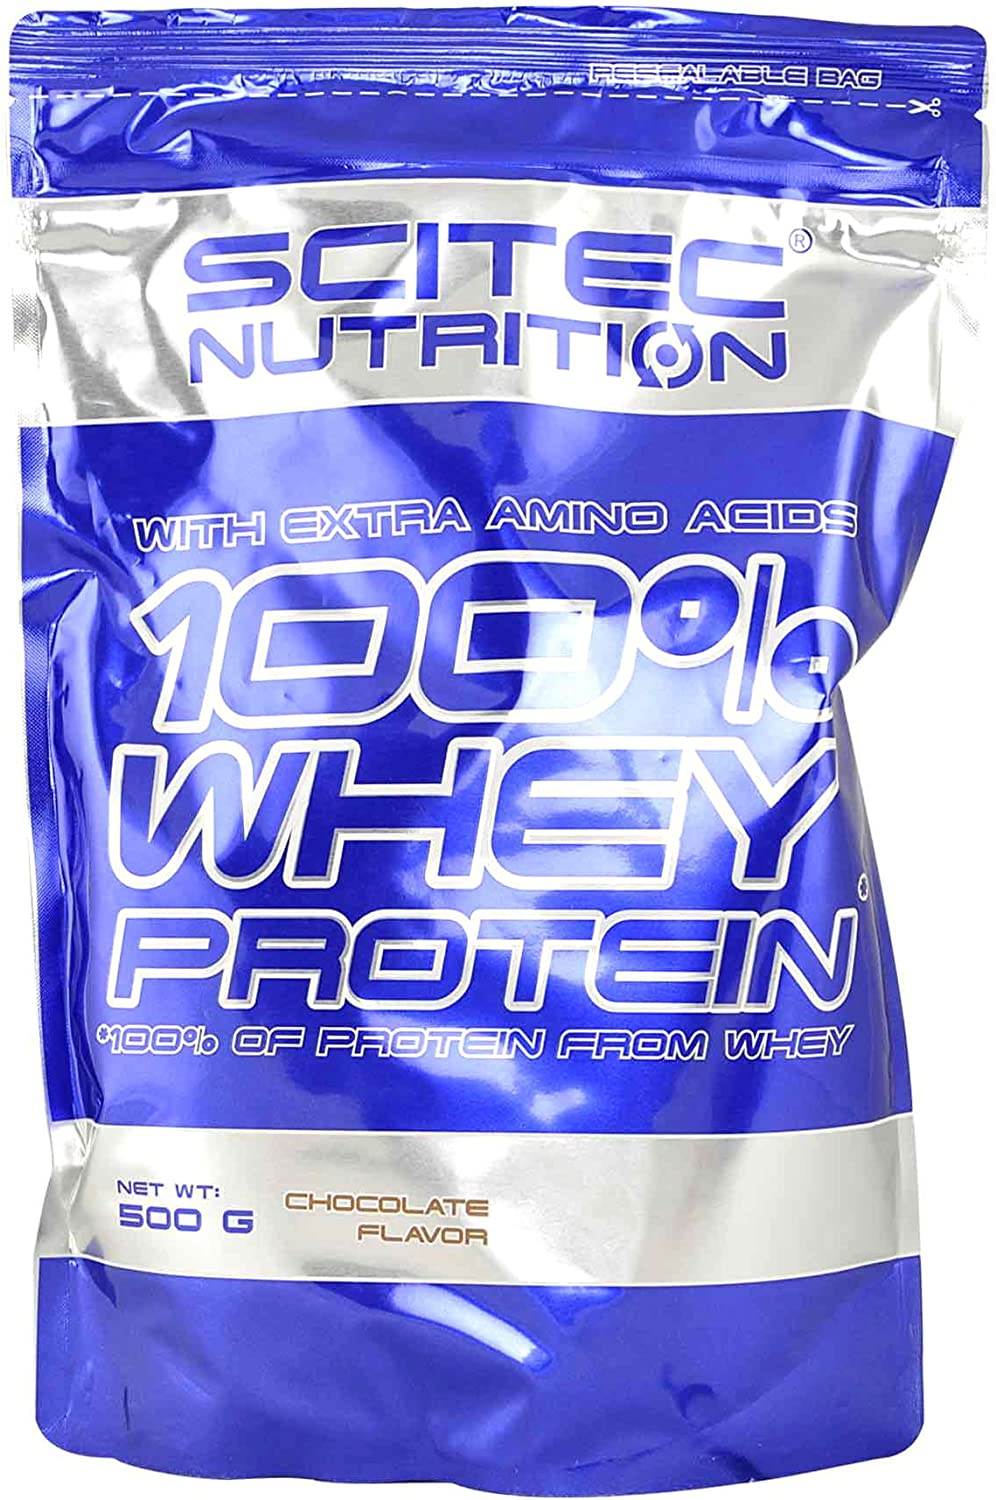 Scitec Nutrition Whey Protein Proteína Chocolate - 500 g